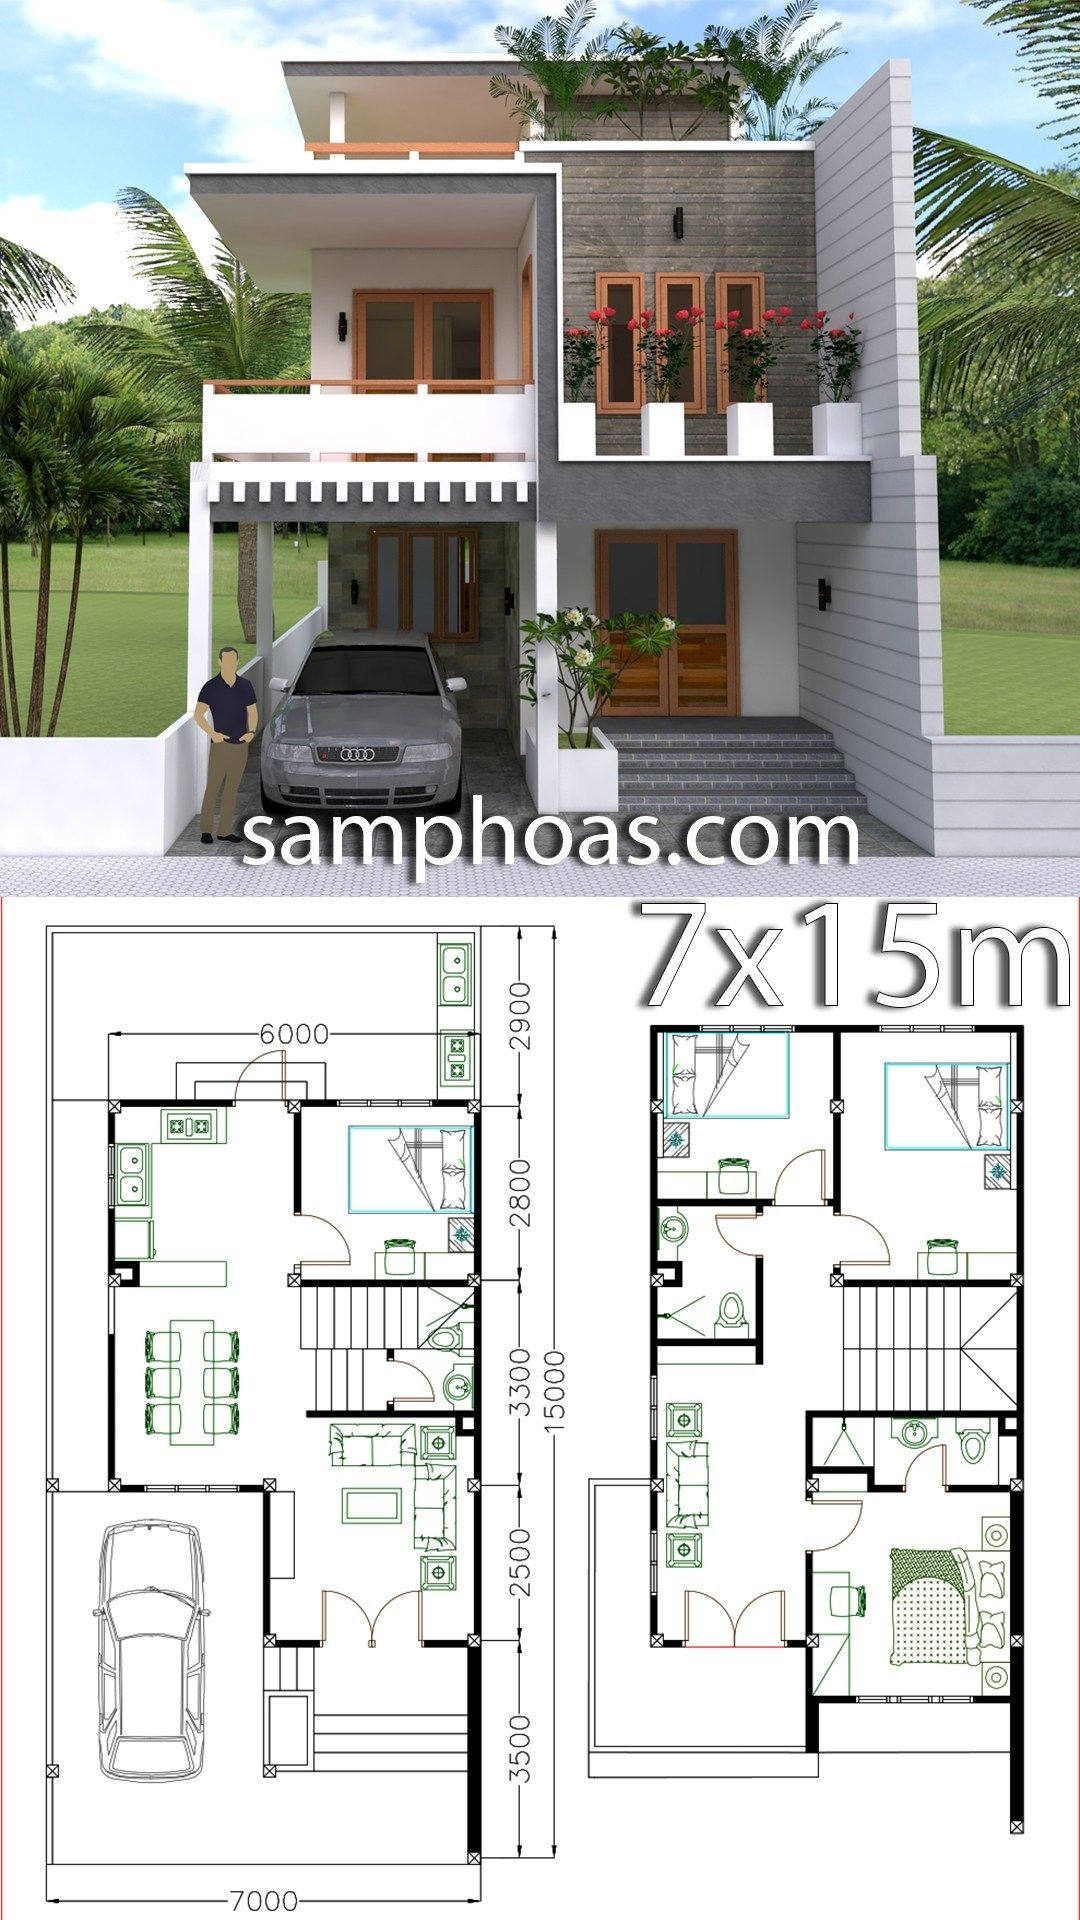 Home Design Plan 7x15m With 4 Bedrooms Samphoas Plansearch Duplex House Plans Duplex House Design House Designs Exterior